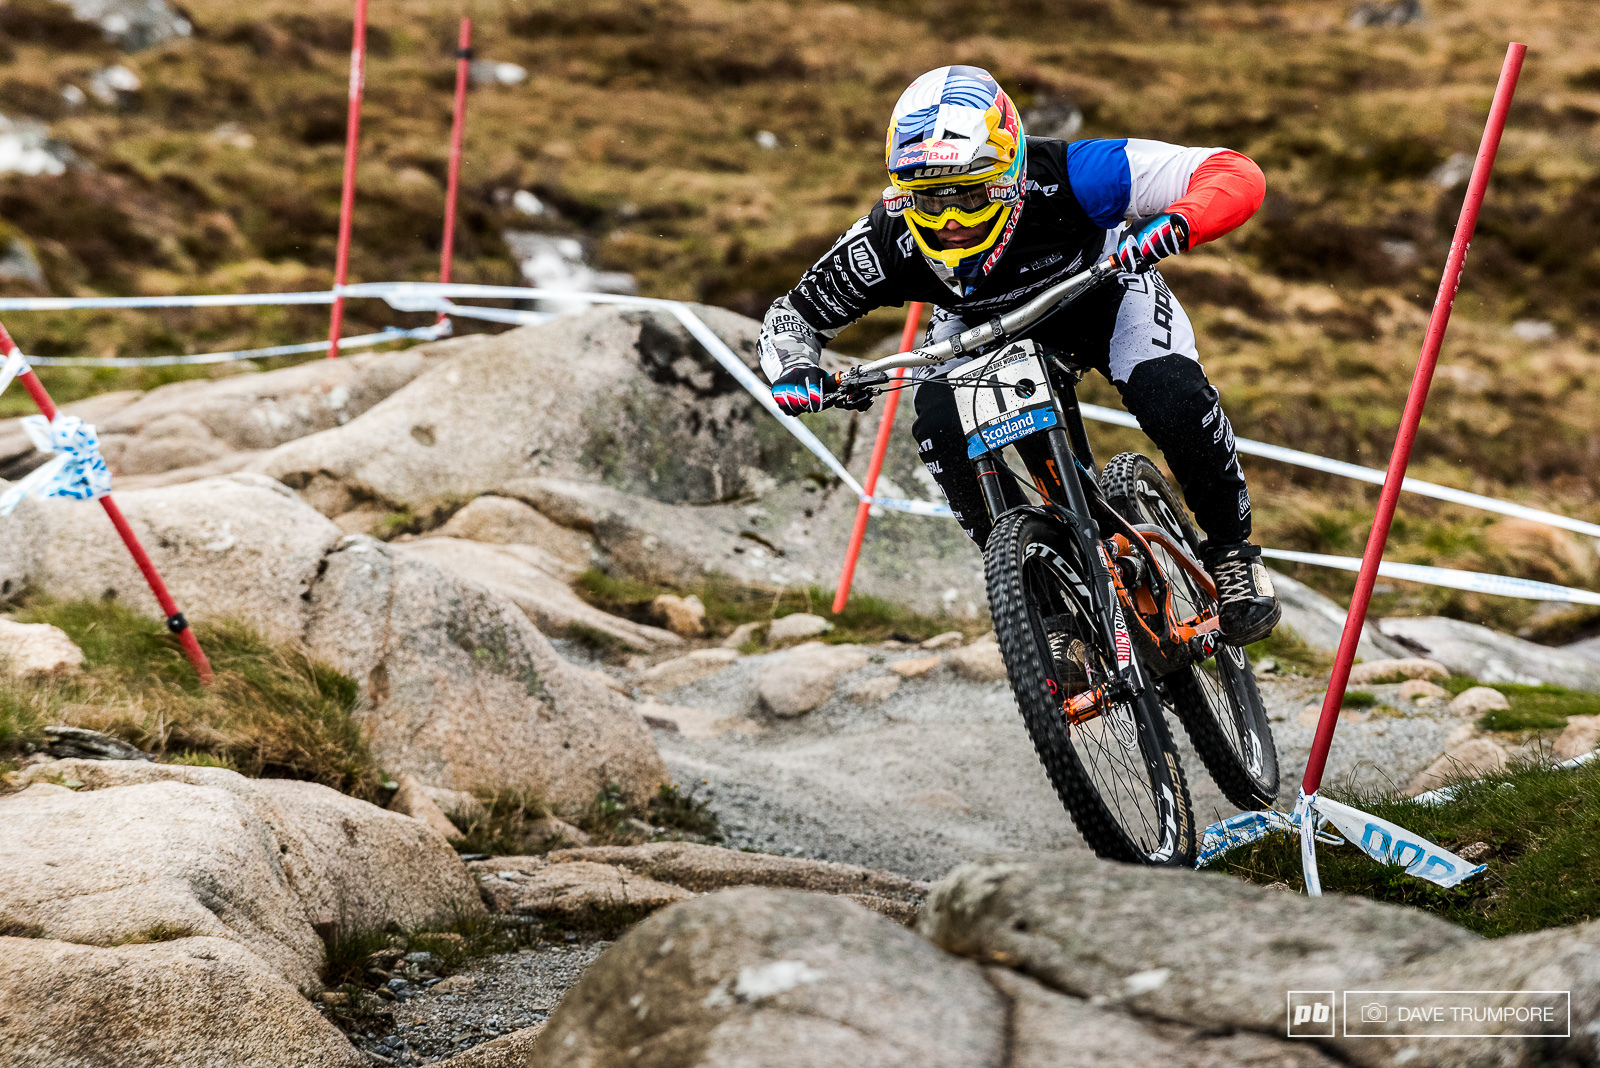 Fort William Scotland sporting the 1 plate of the World Cup series leader.